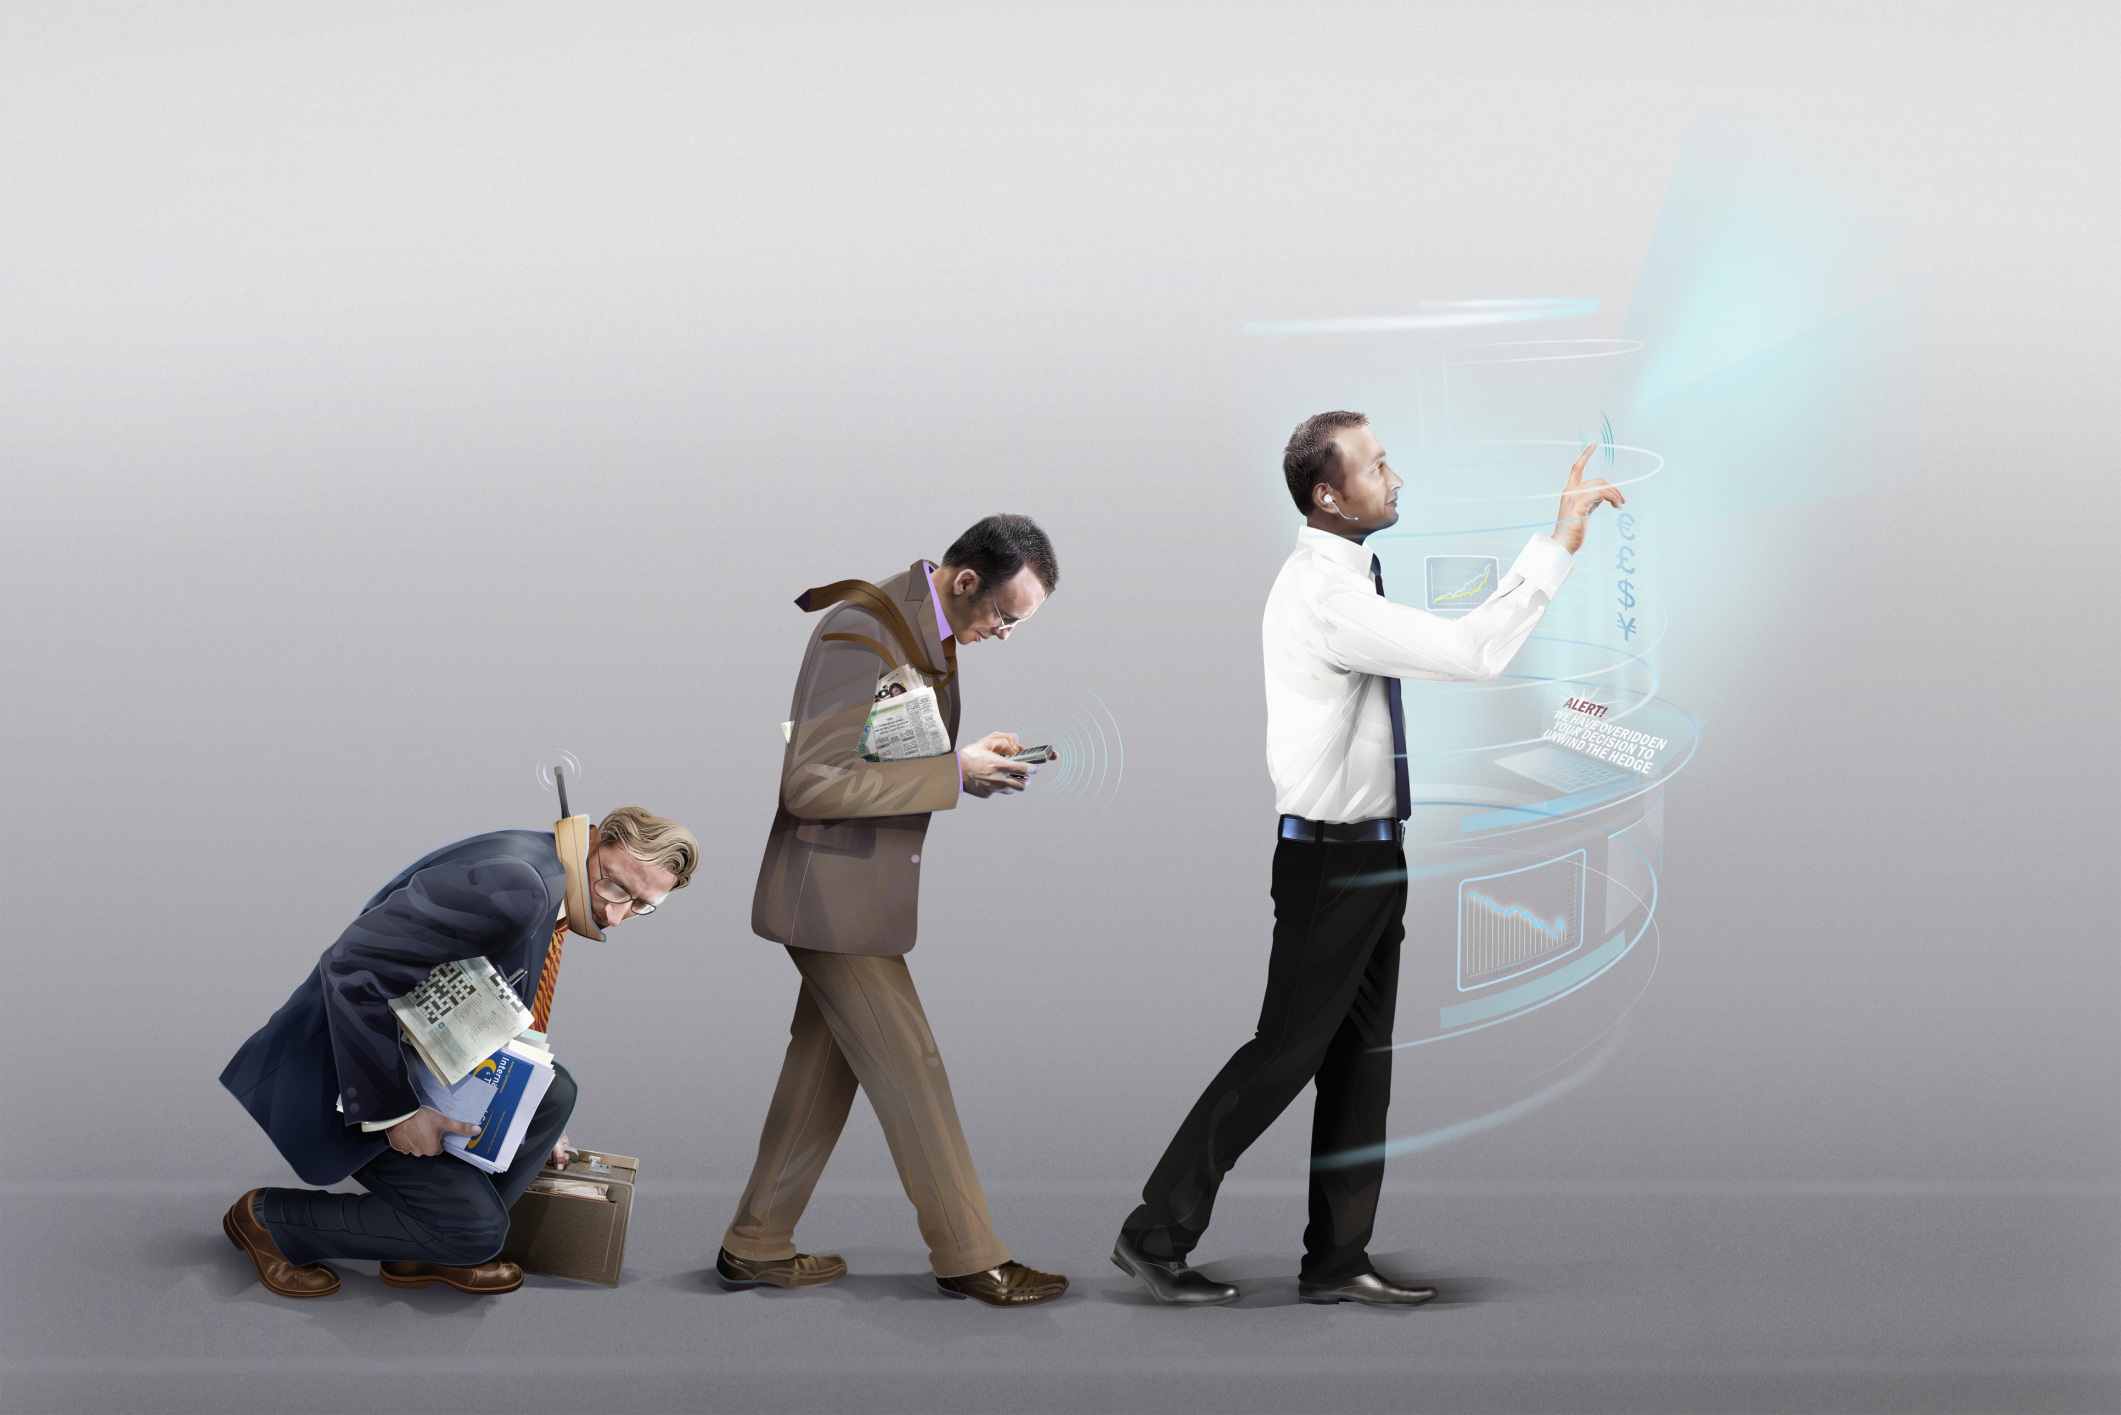 Three businessmen in stages of evolution of mobile communication technology